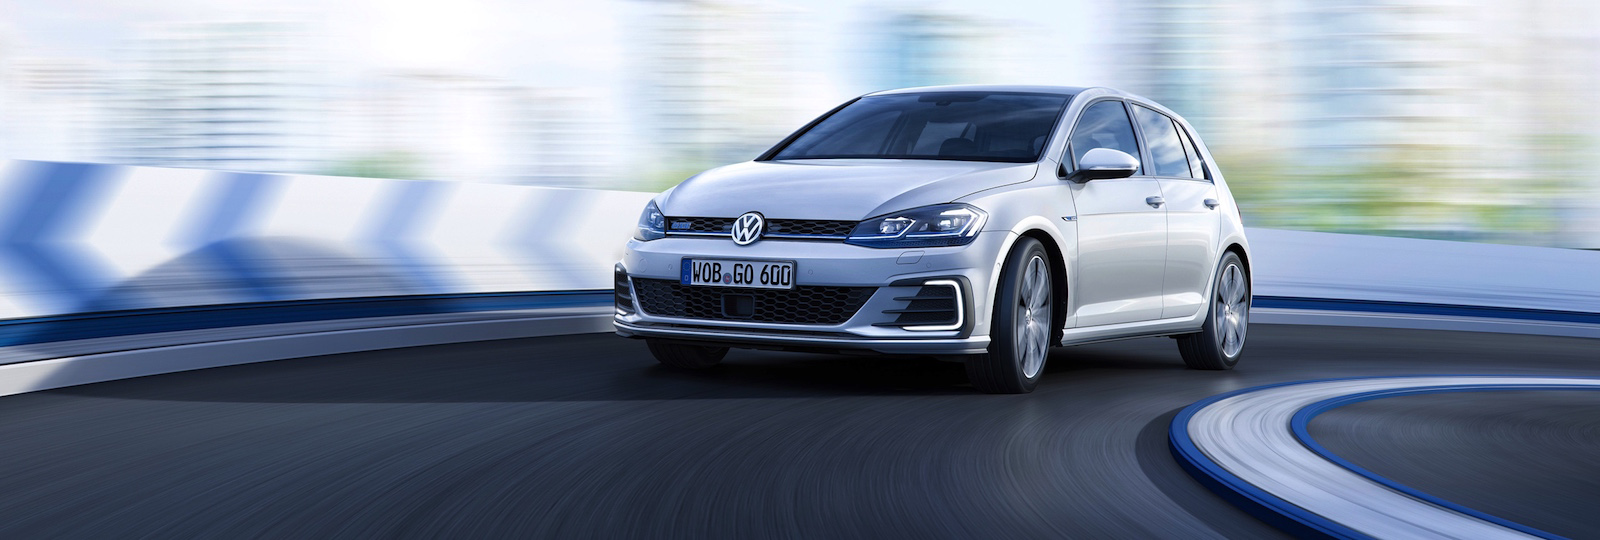 xvolkswagen-golf-gte-1600-540.png,qoriginalExtension=jpg.pagespeed.ic.4bIdZ89mNO.jpg